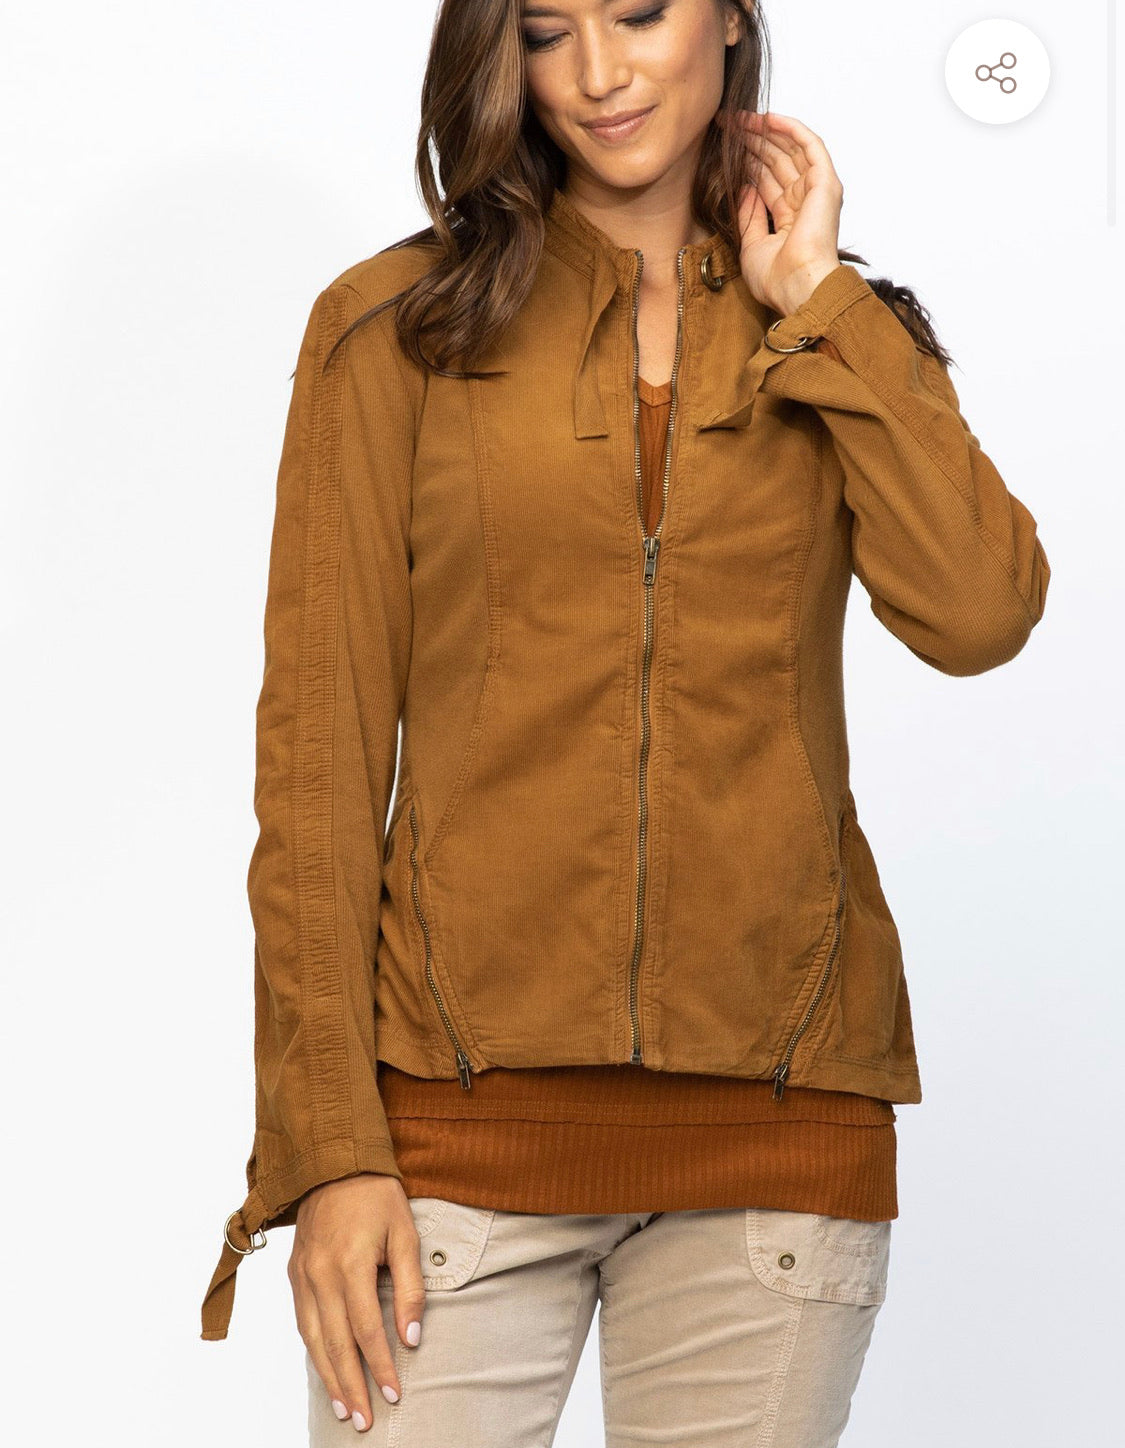 WEAR 13955W SERENGETI JACKET